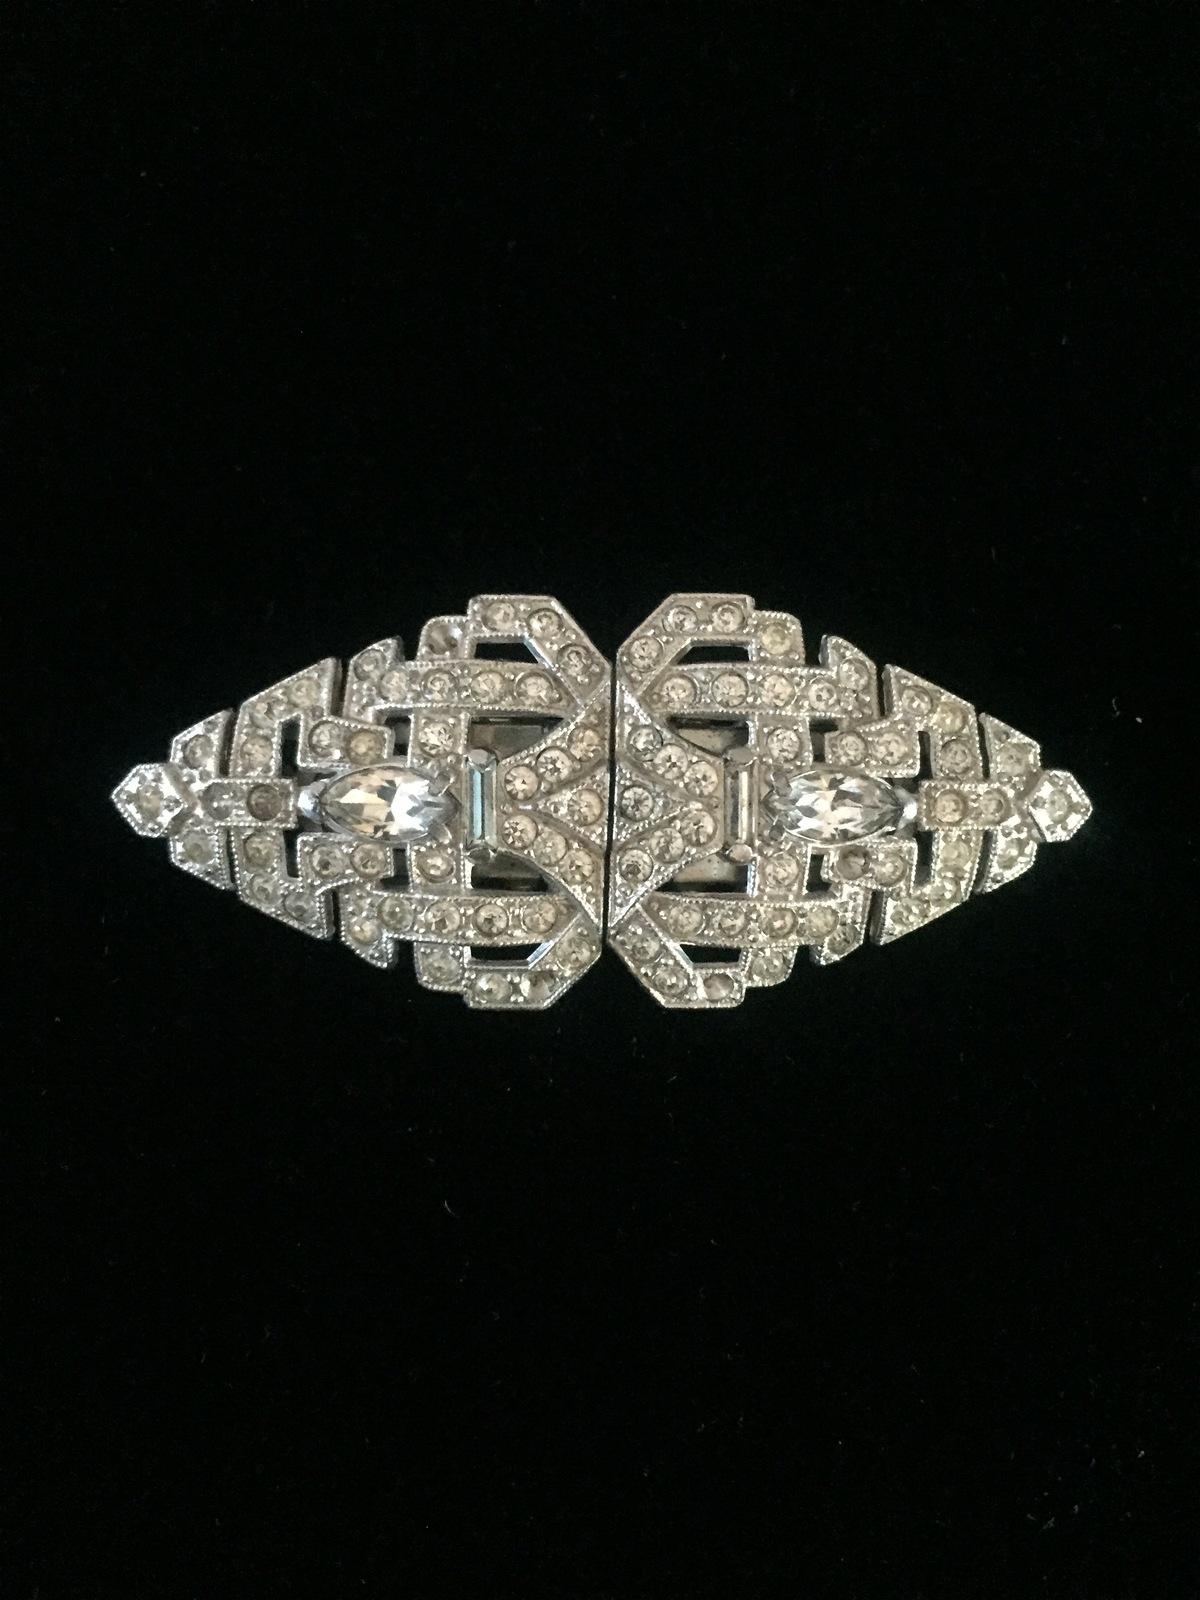 Vintage 30s Art Deco rhinestone duette (brooch and fur clips)